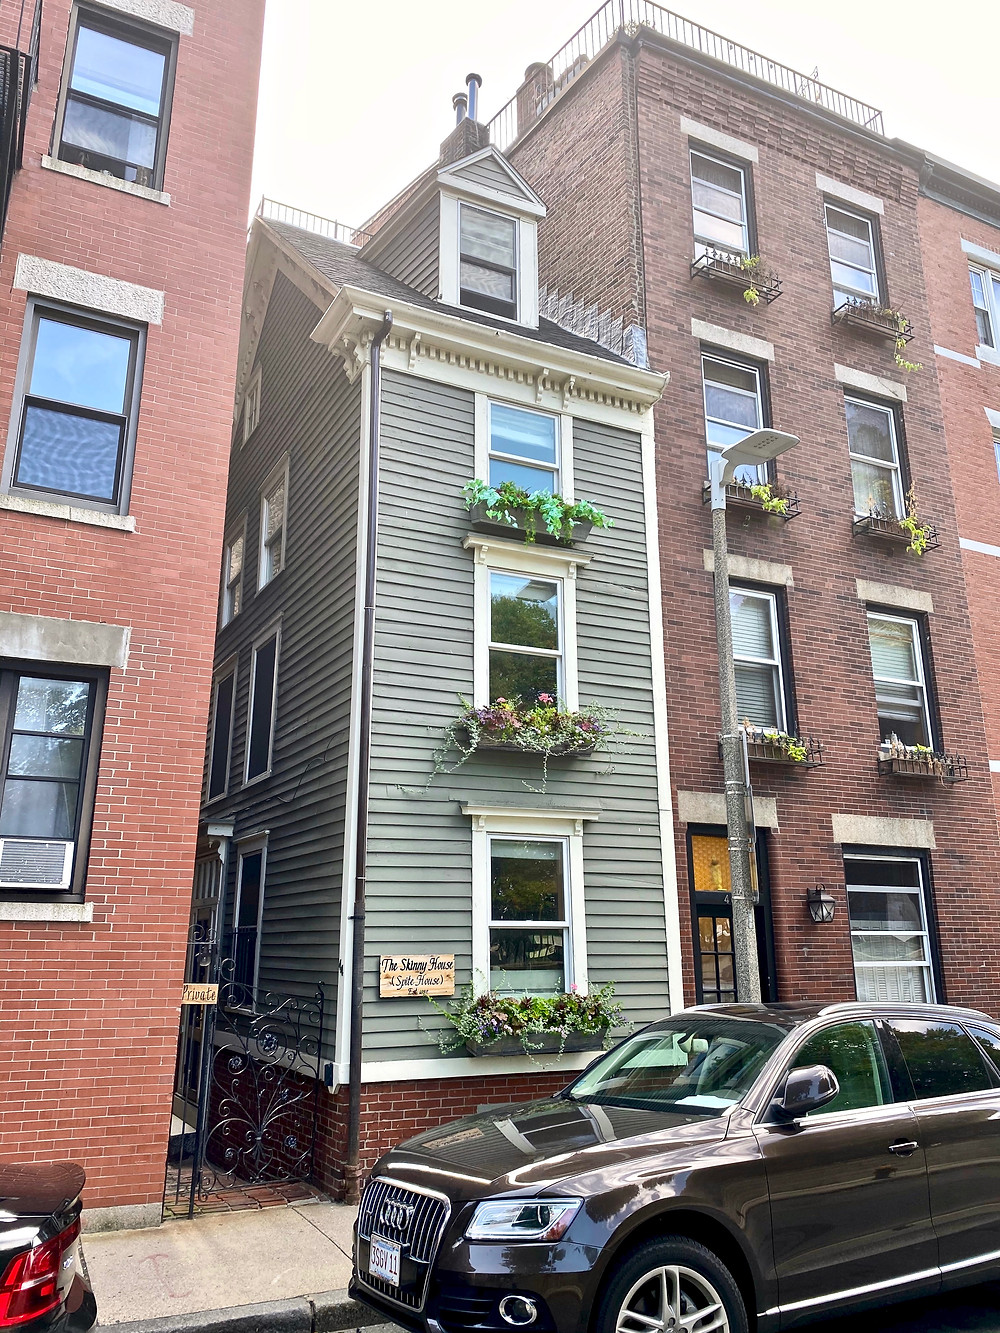 the Skinny House in Boston's North End